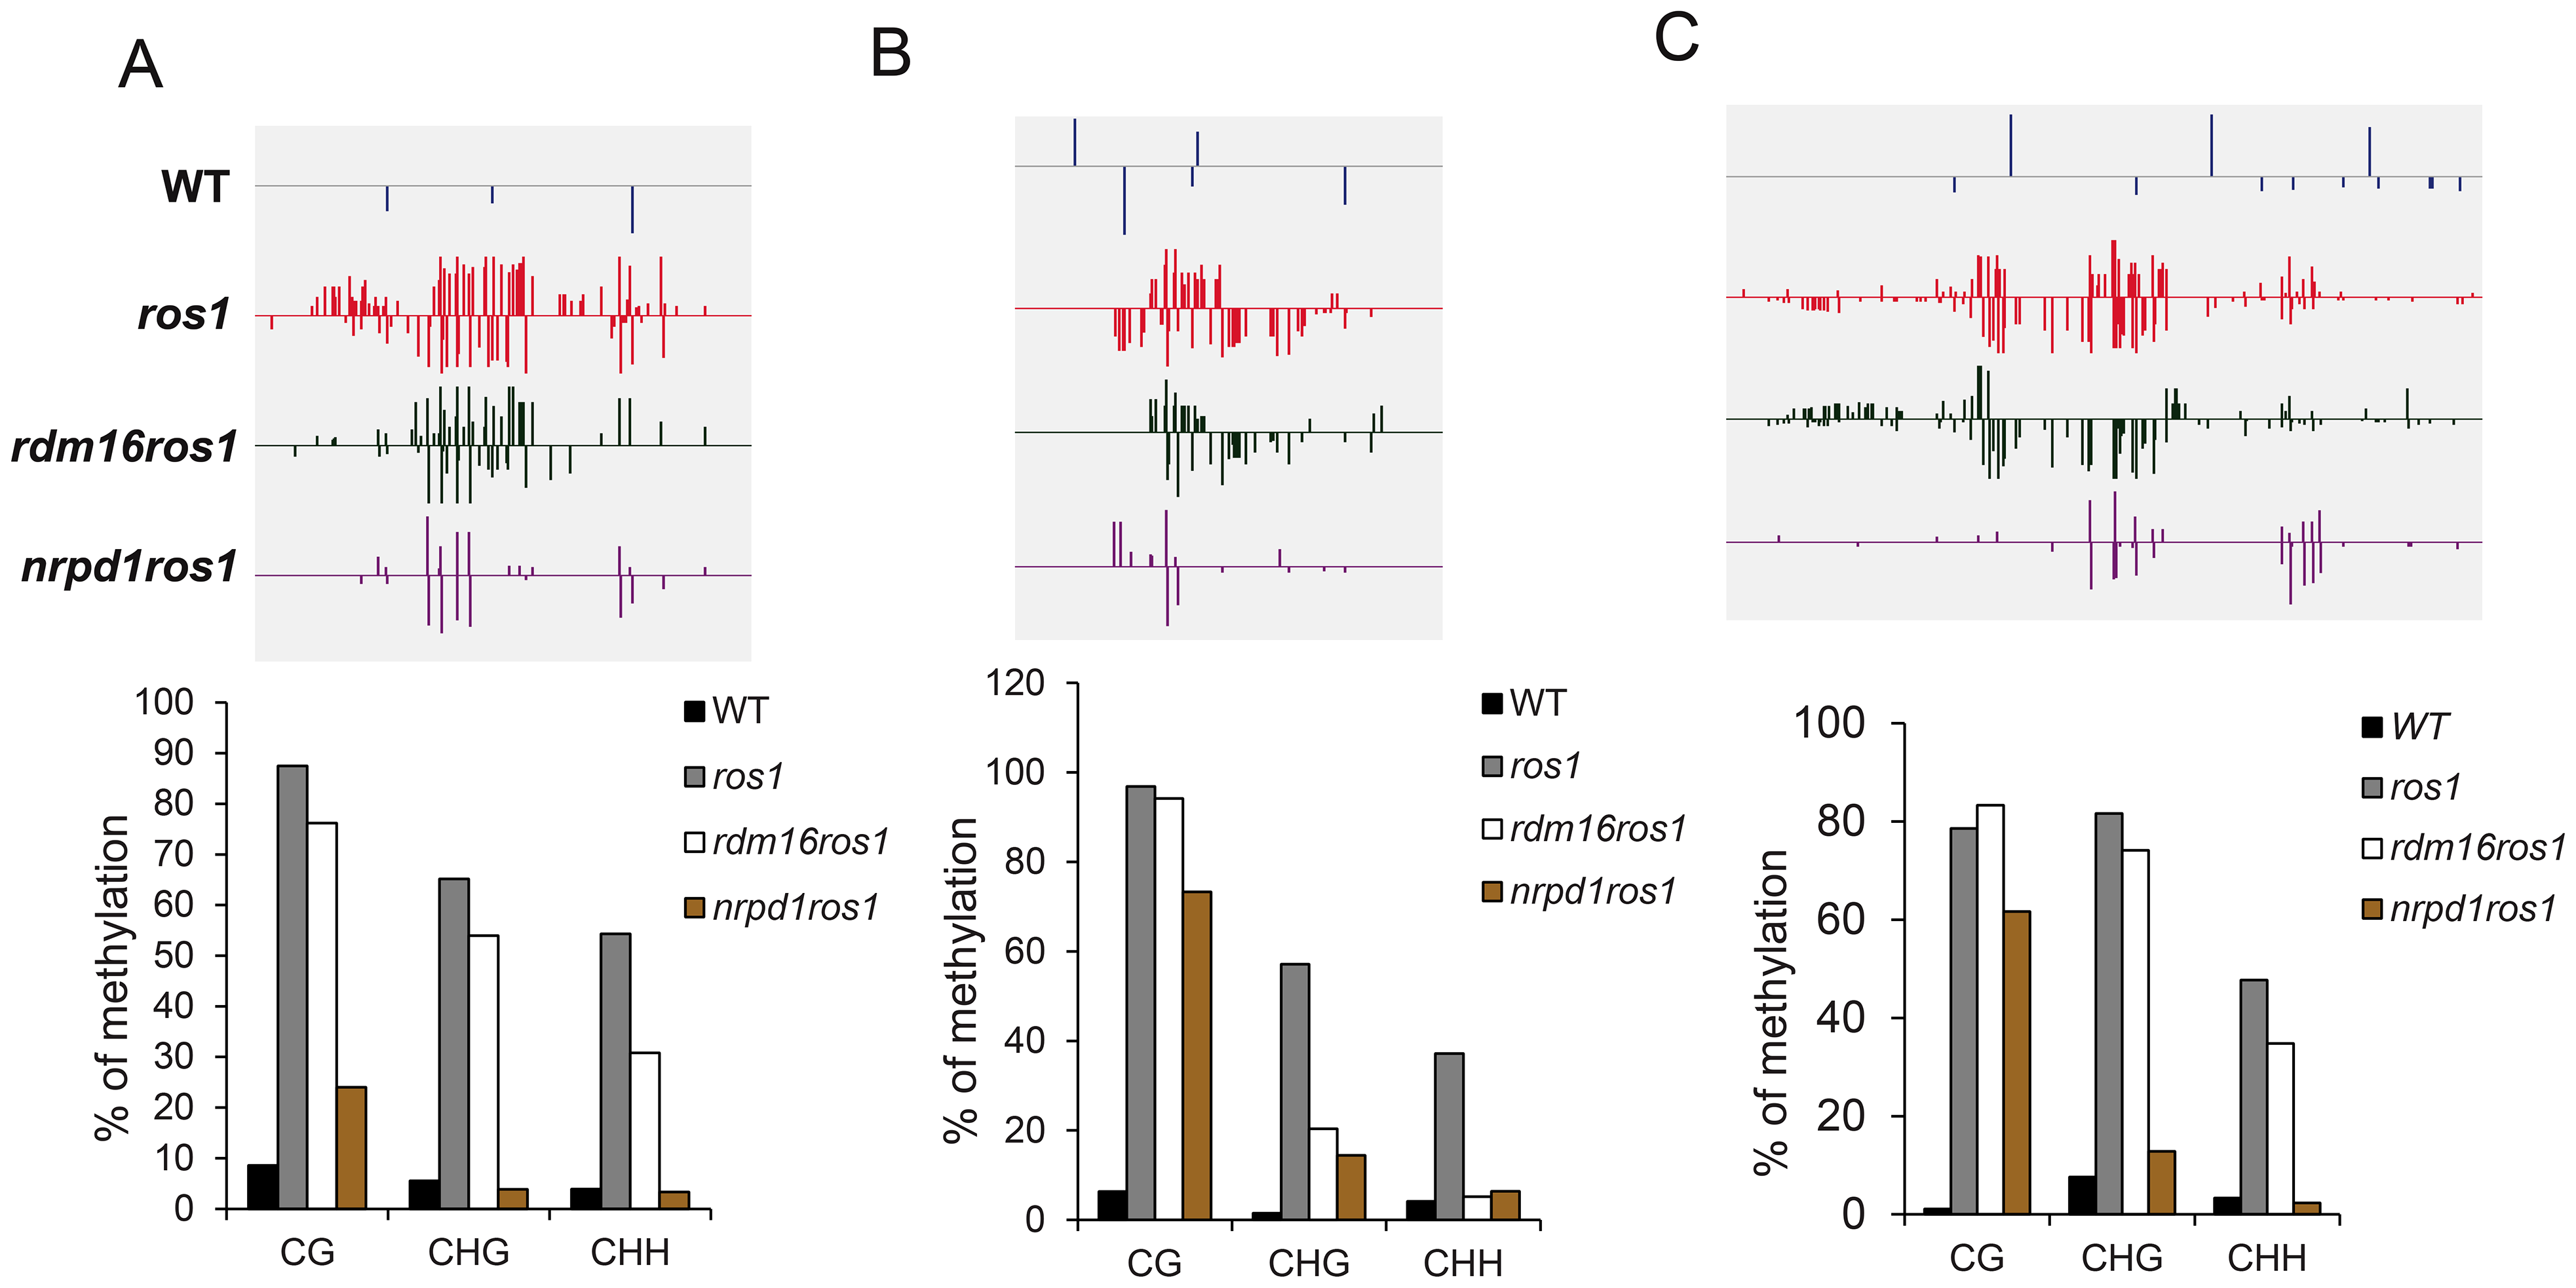 DNA methylation analysis of selected loci in WT, <i>ros1</i>, <i>rdm16ros1</i> and <i>nrpd1ros1</i>.